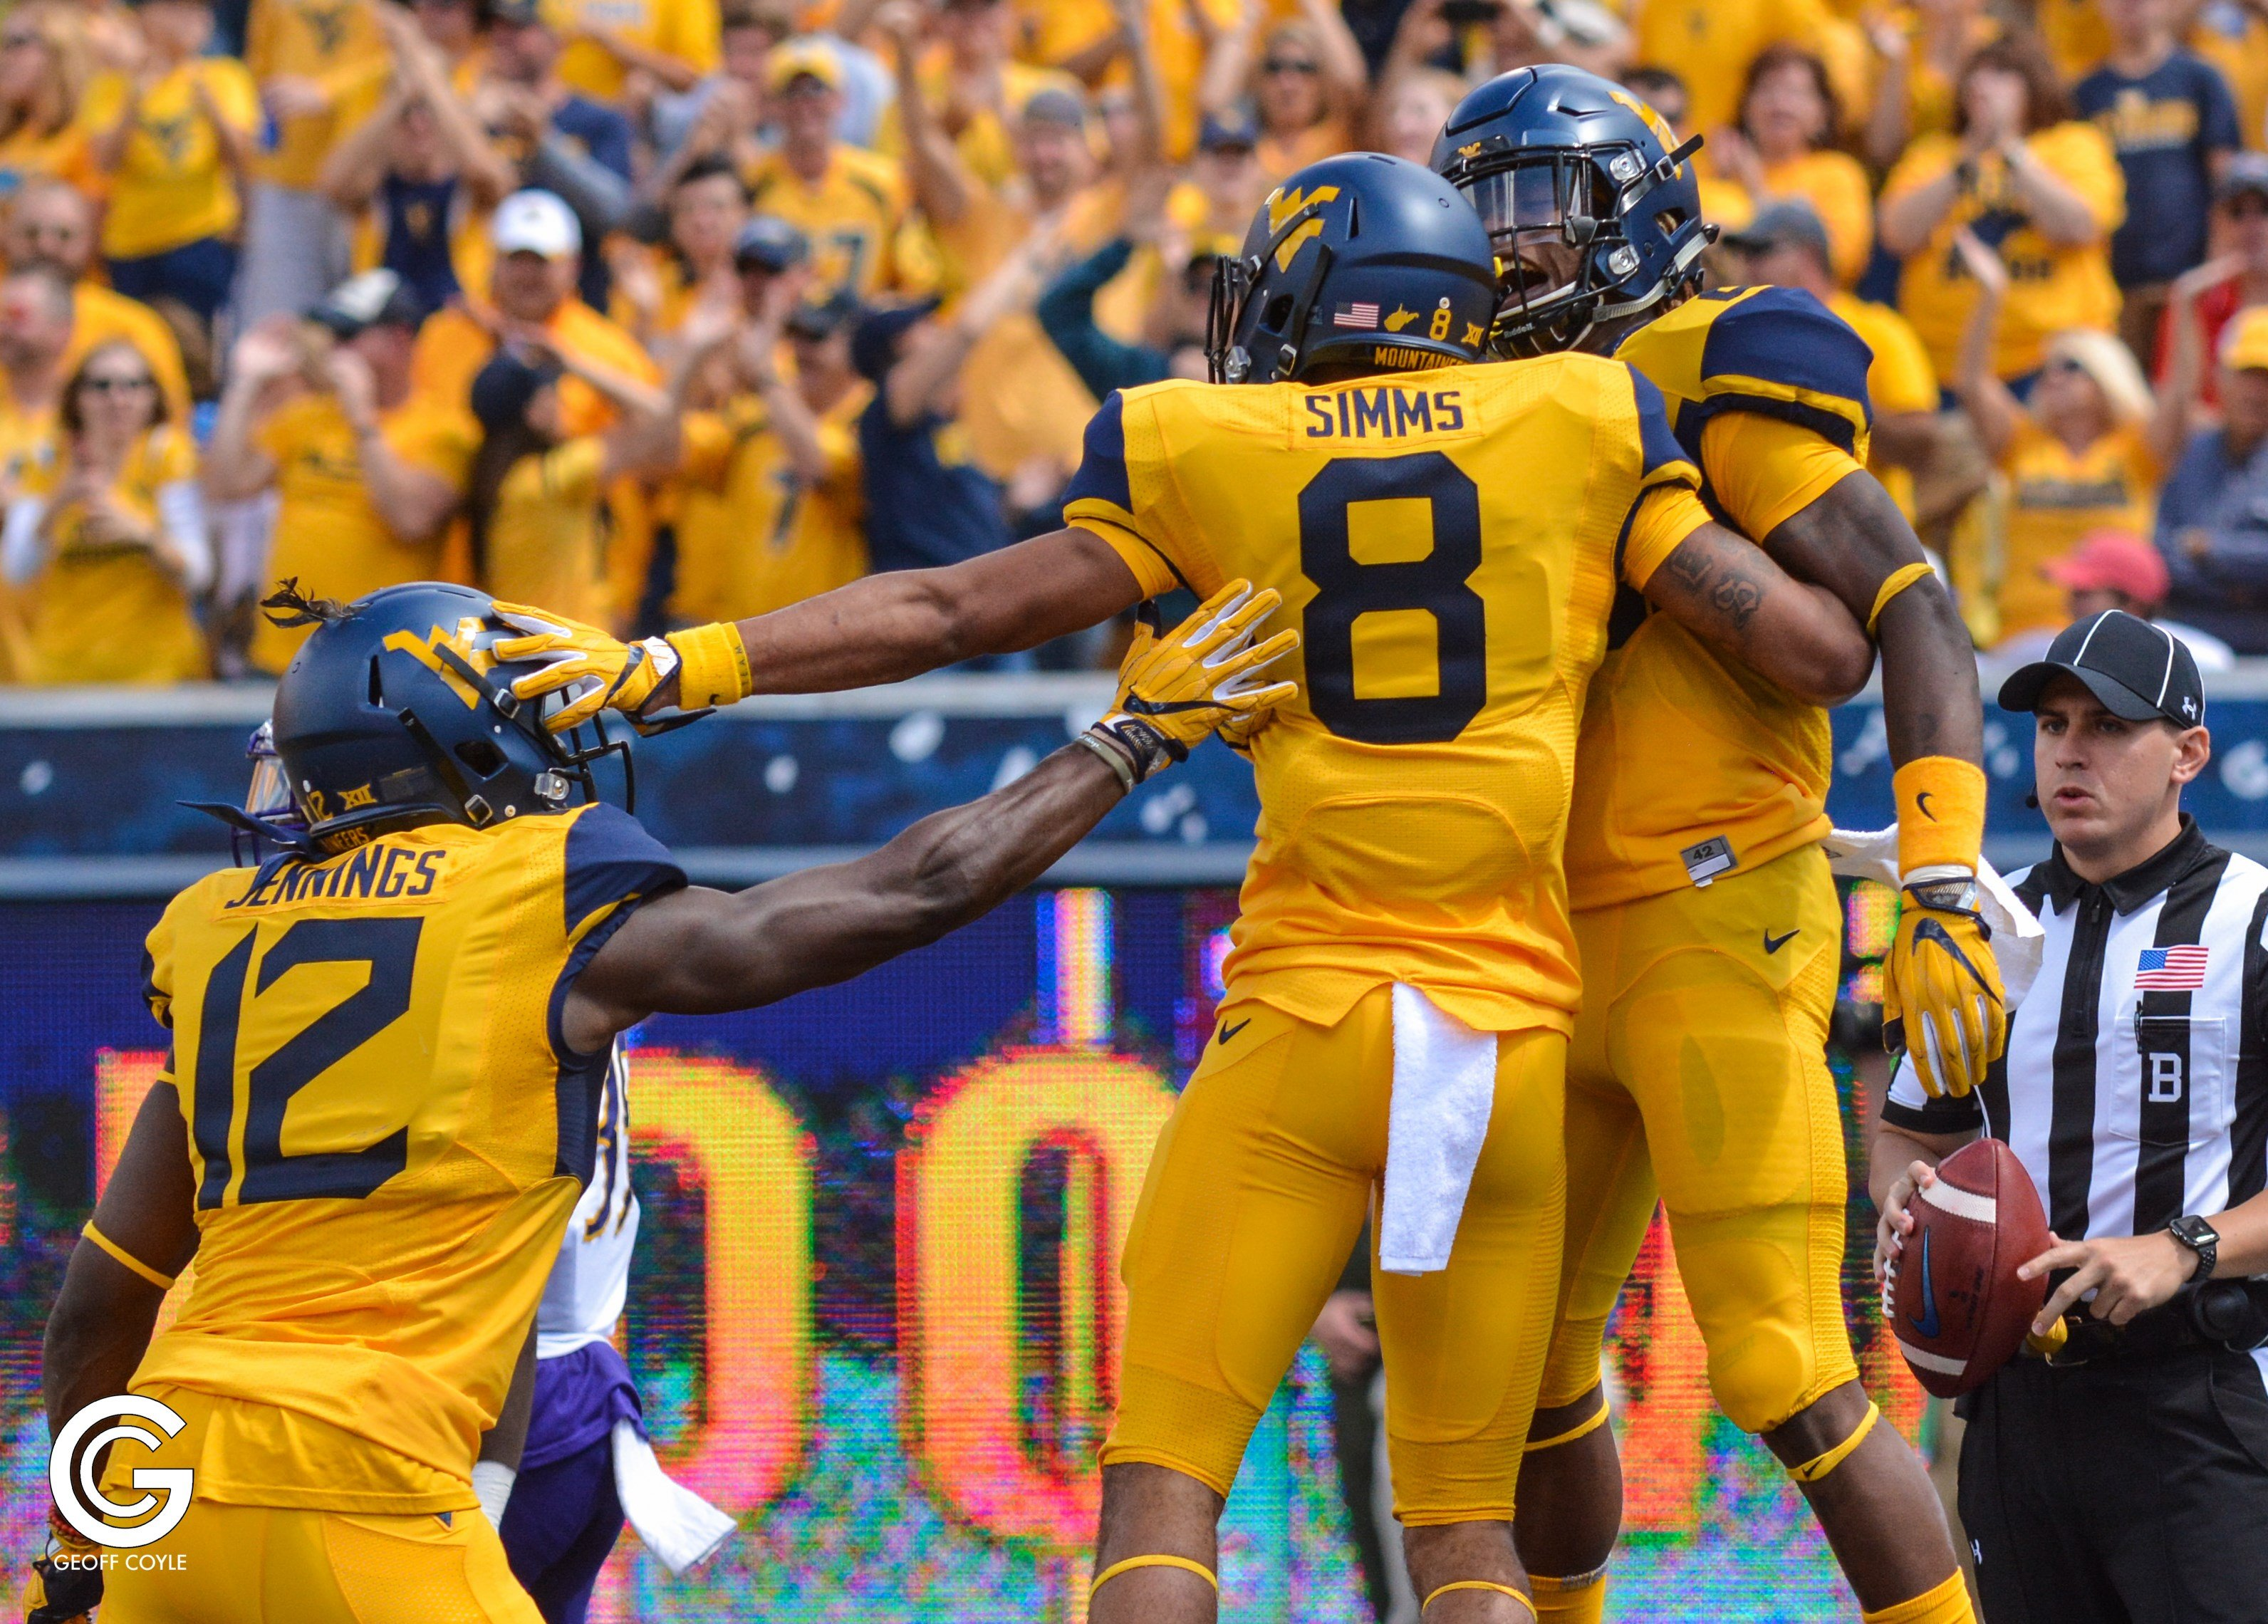 Gary Jennings (12), Marcus Simms (8) and Justin Crawford celebrate a WVU touchdown. (PHOTO: Geoff Coyle)